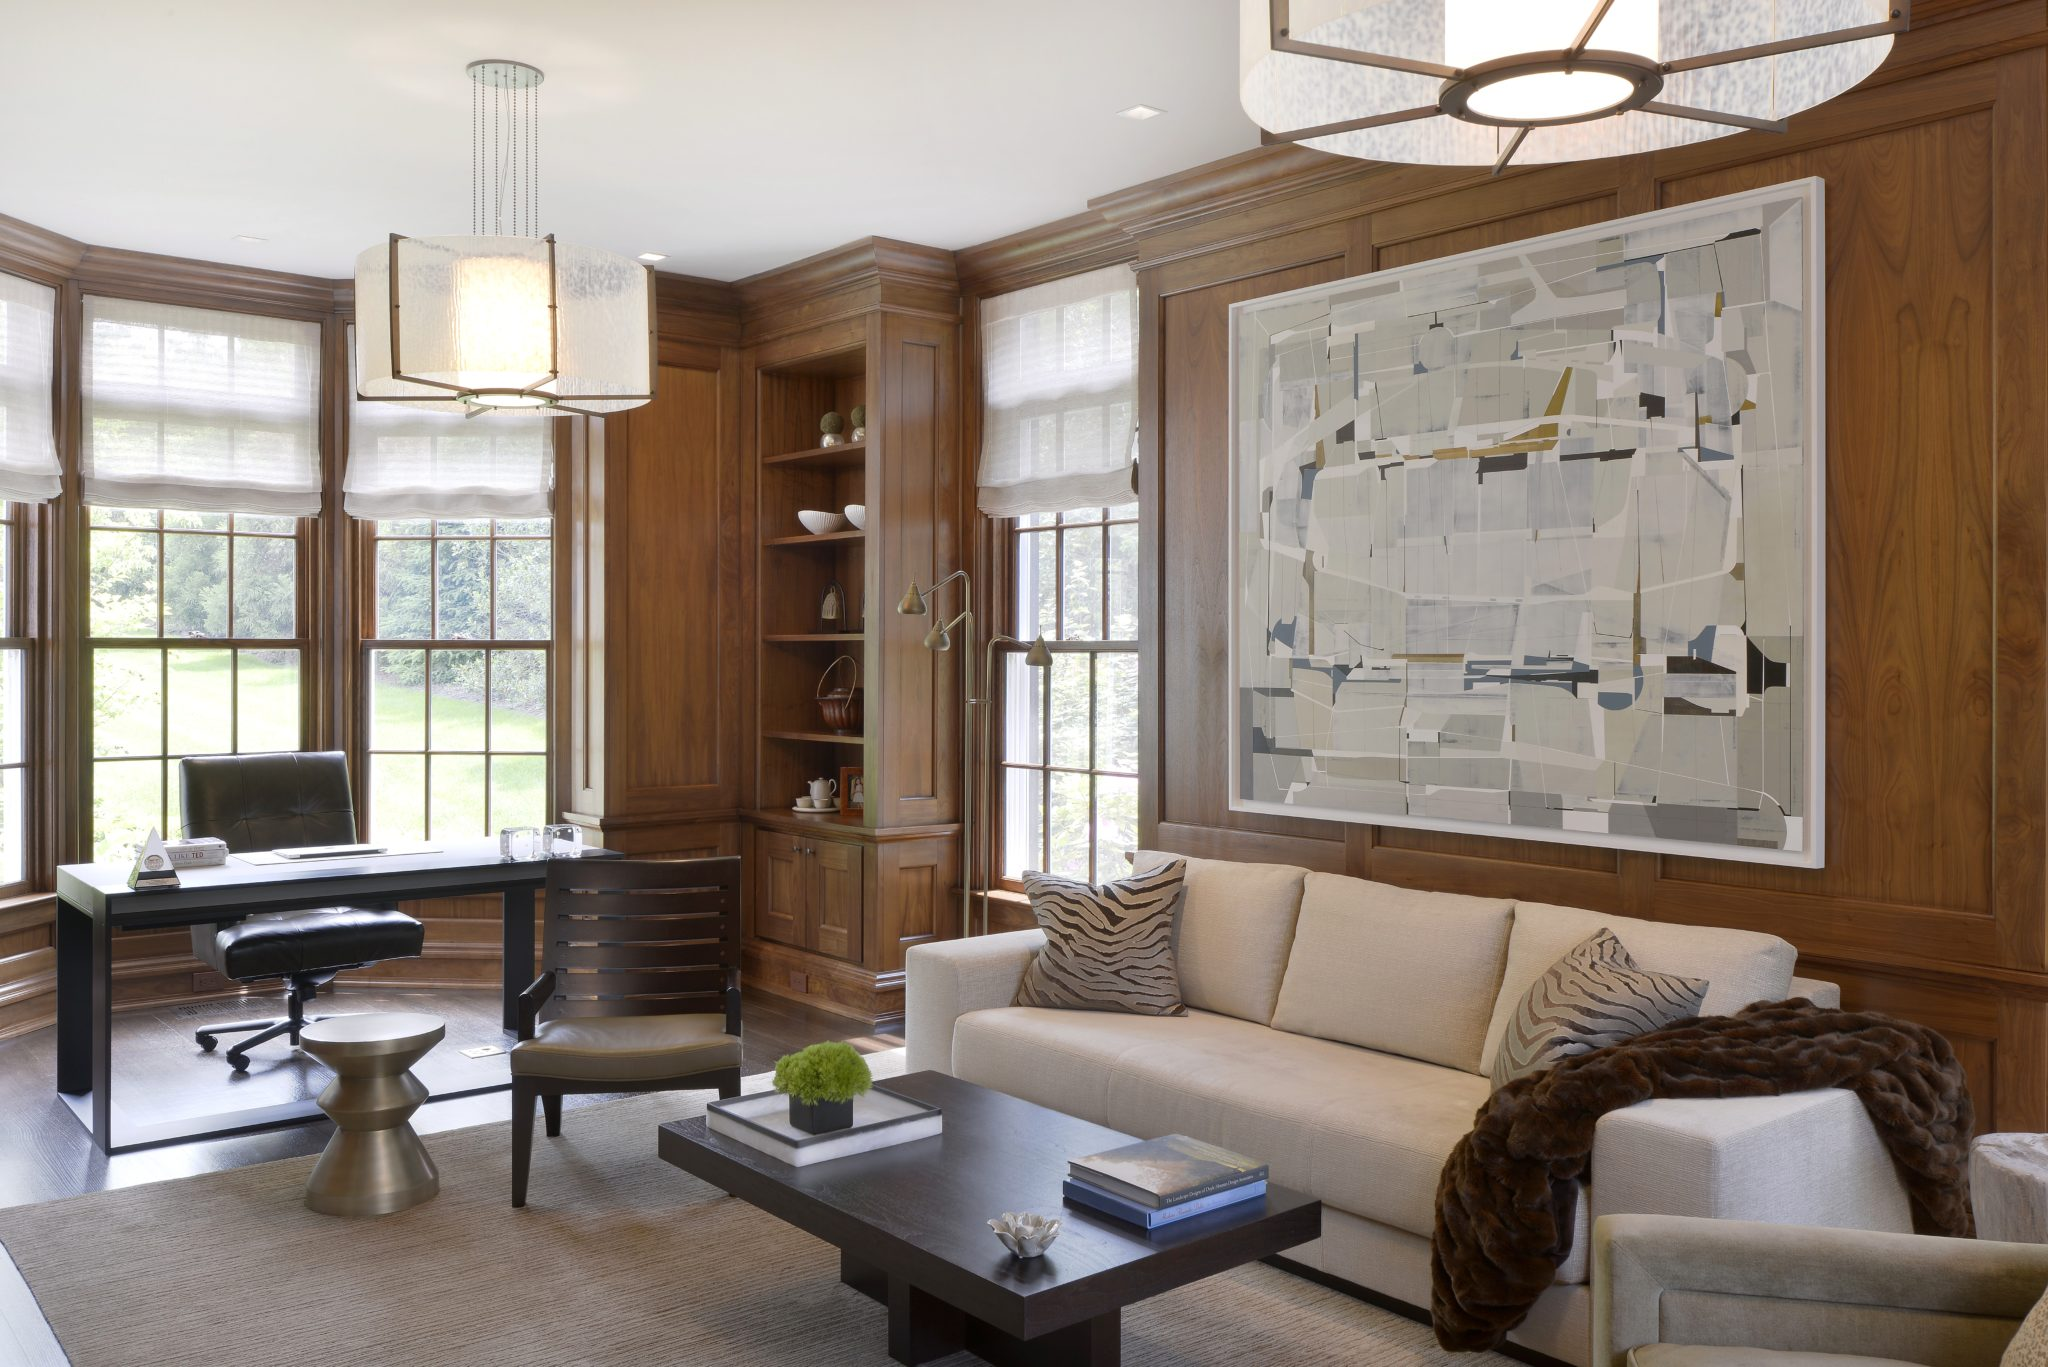 Living room with stain grade paneled walls by Alisberg Parker Architects